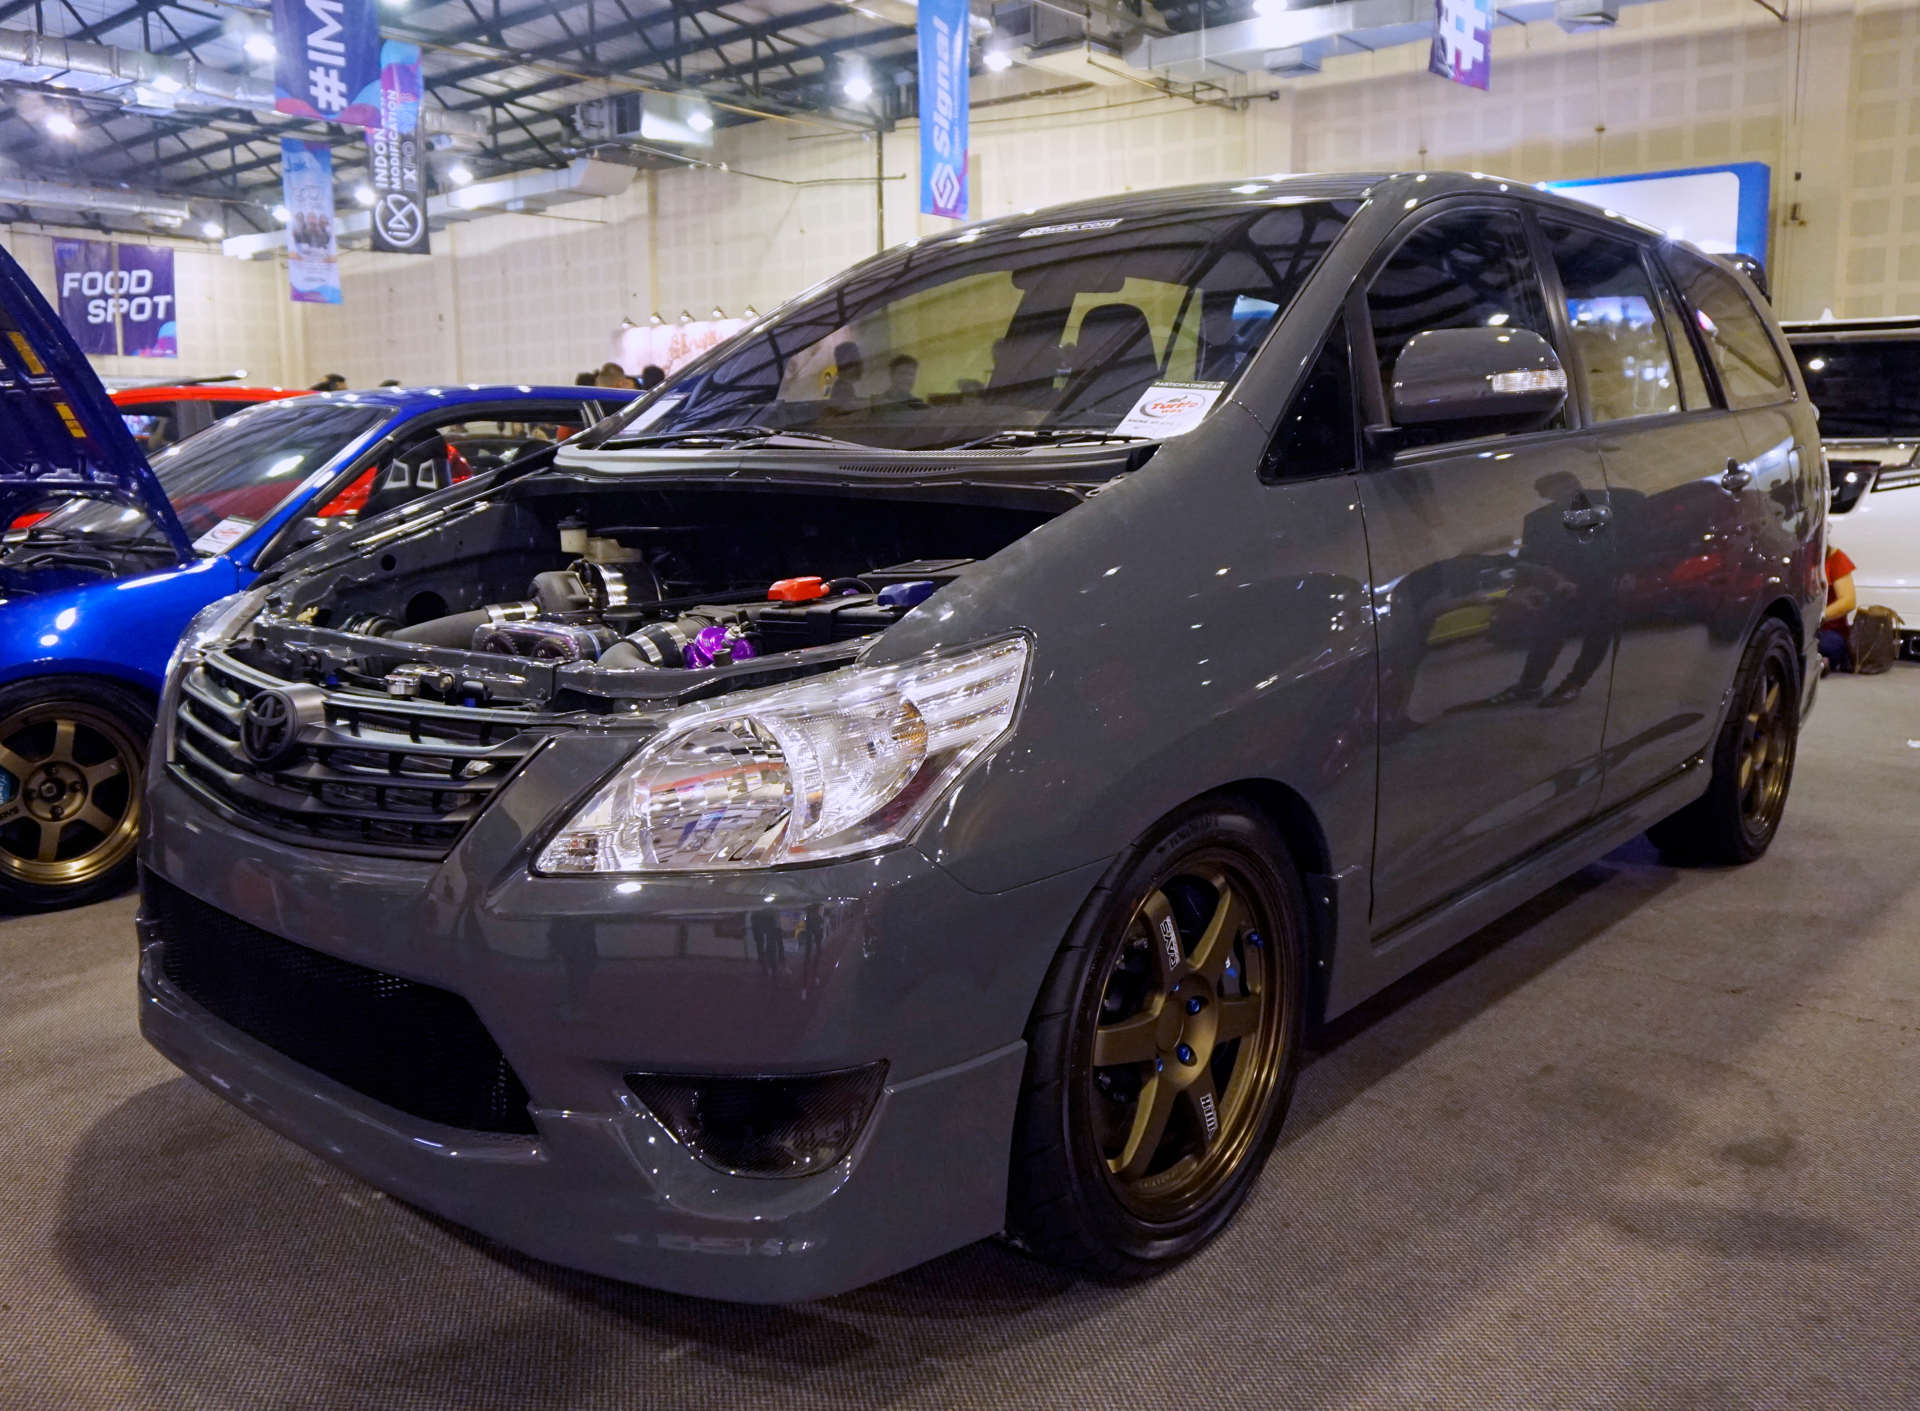 Indonesia modification expo - Event jakarta indonesia (1)